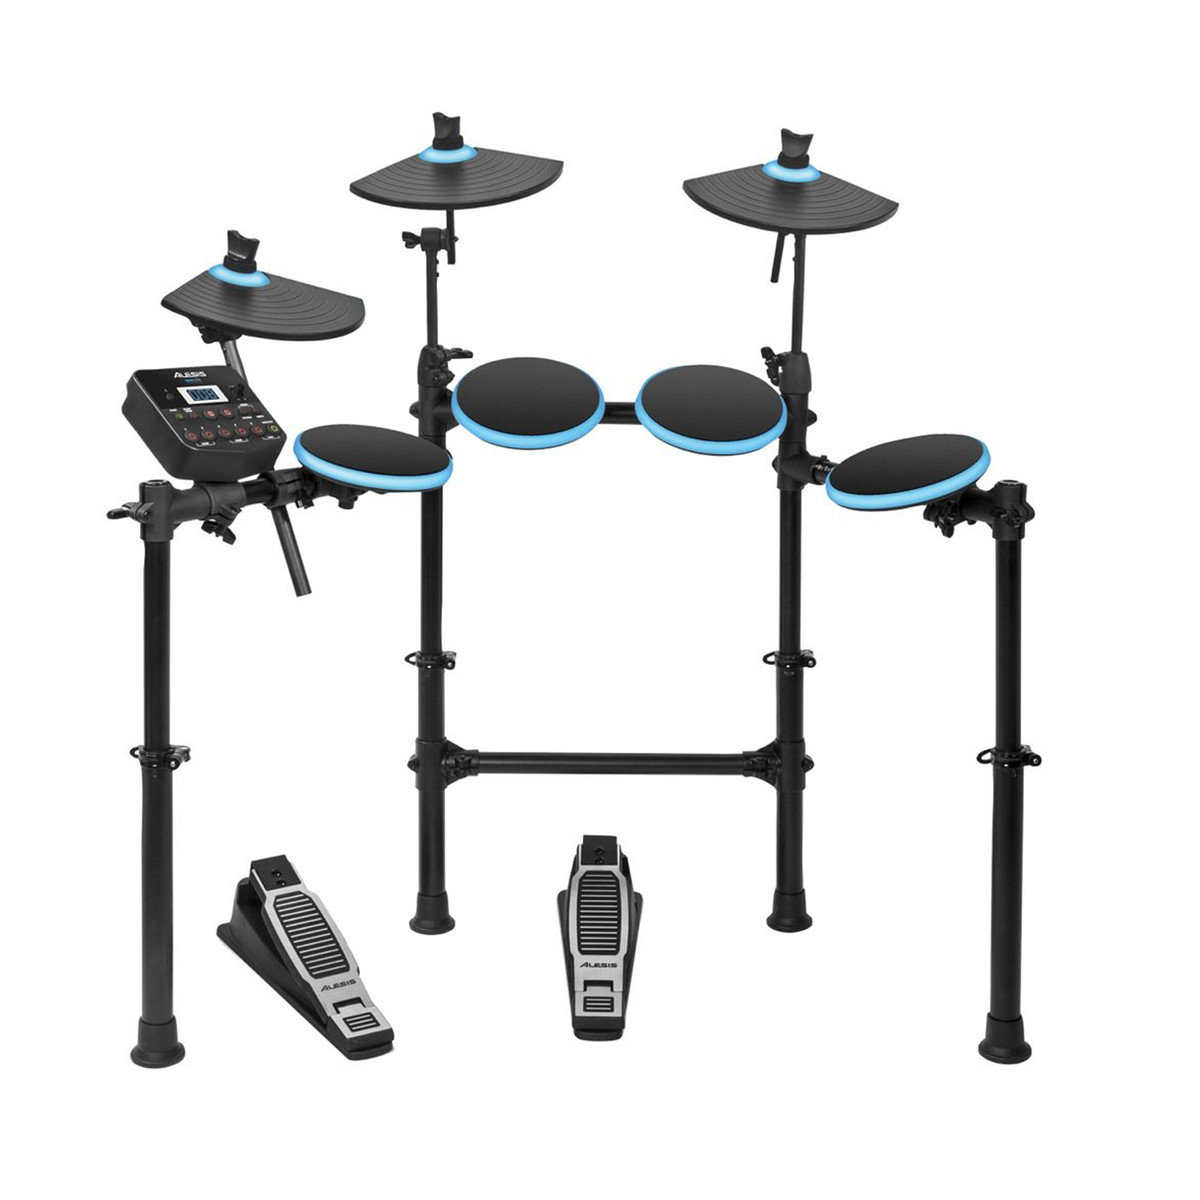 Alesis Dm Lite Electronic Drum Kit At Gear4music Equalizers Crossovers Wiring Kits Caps And More Click On Picture To